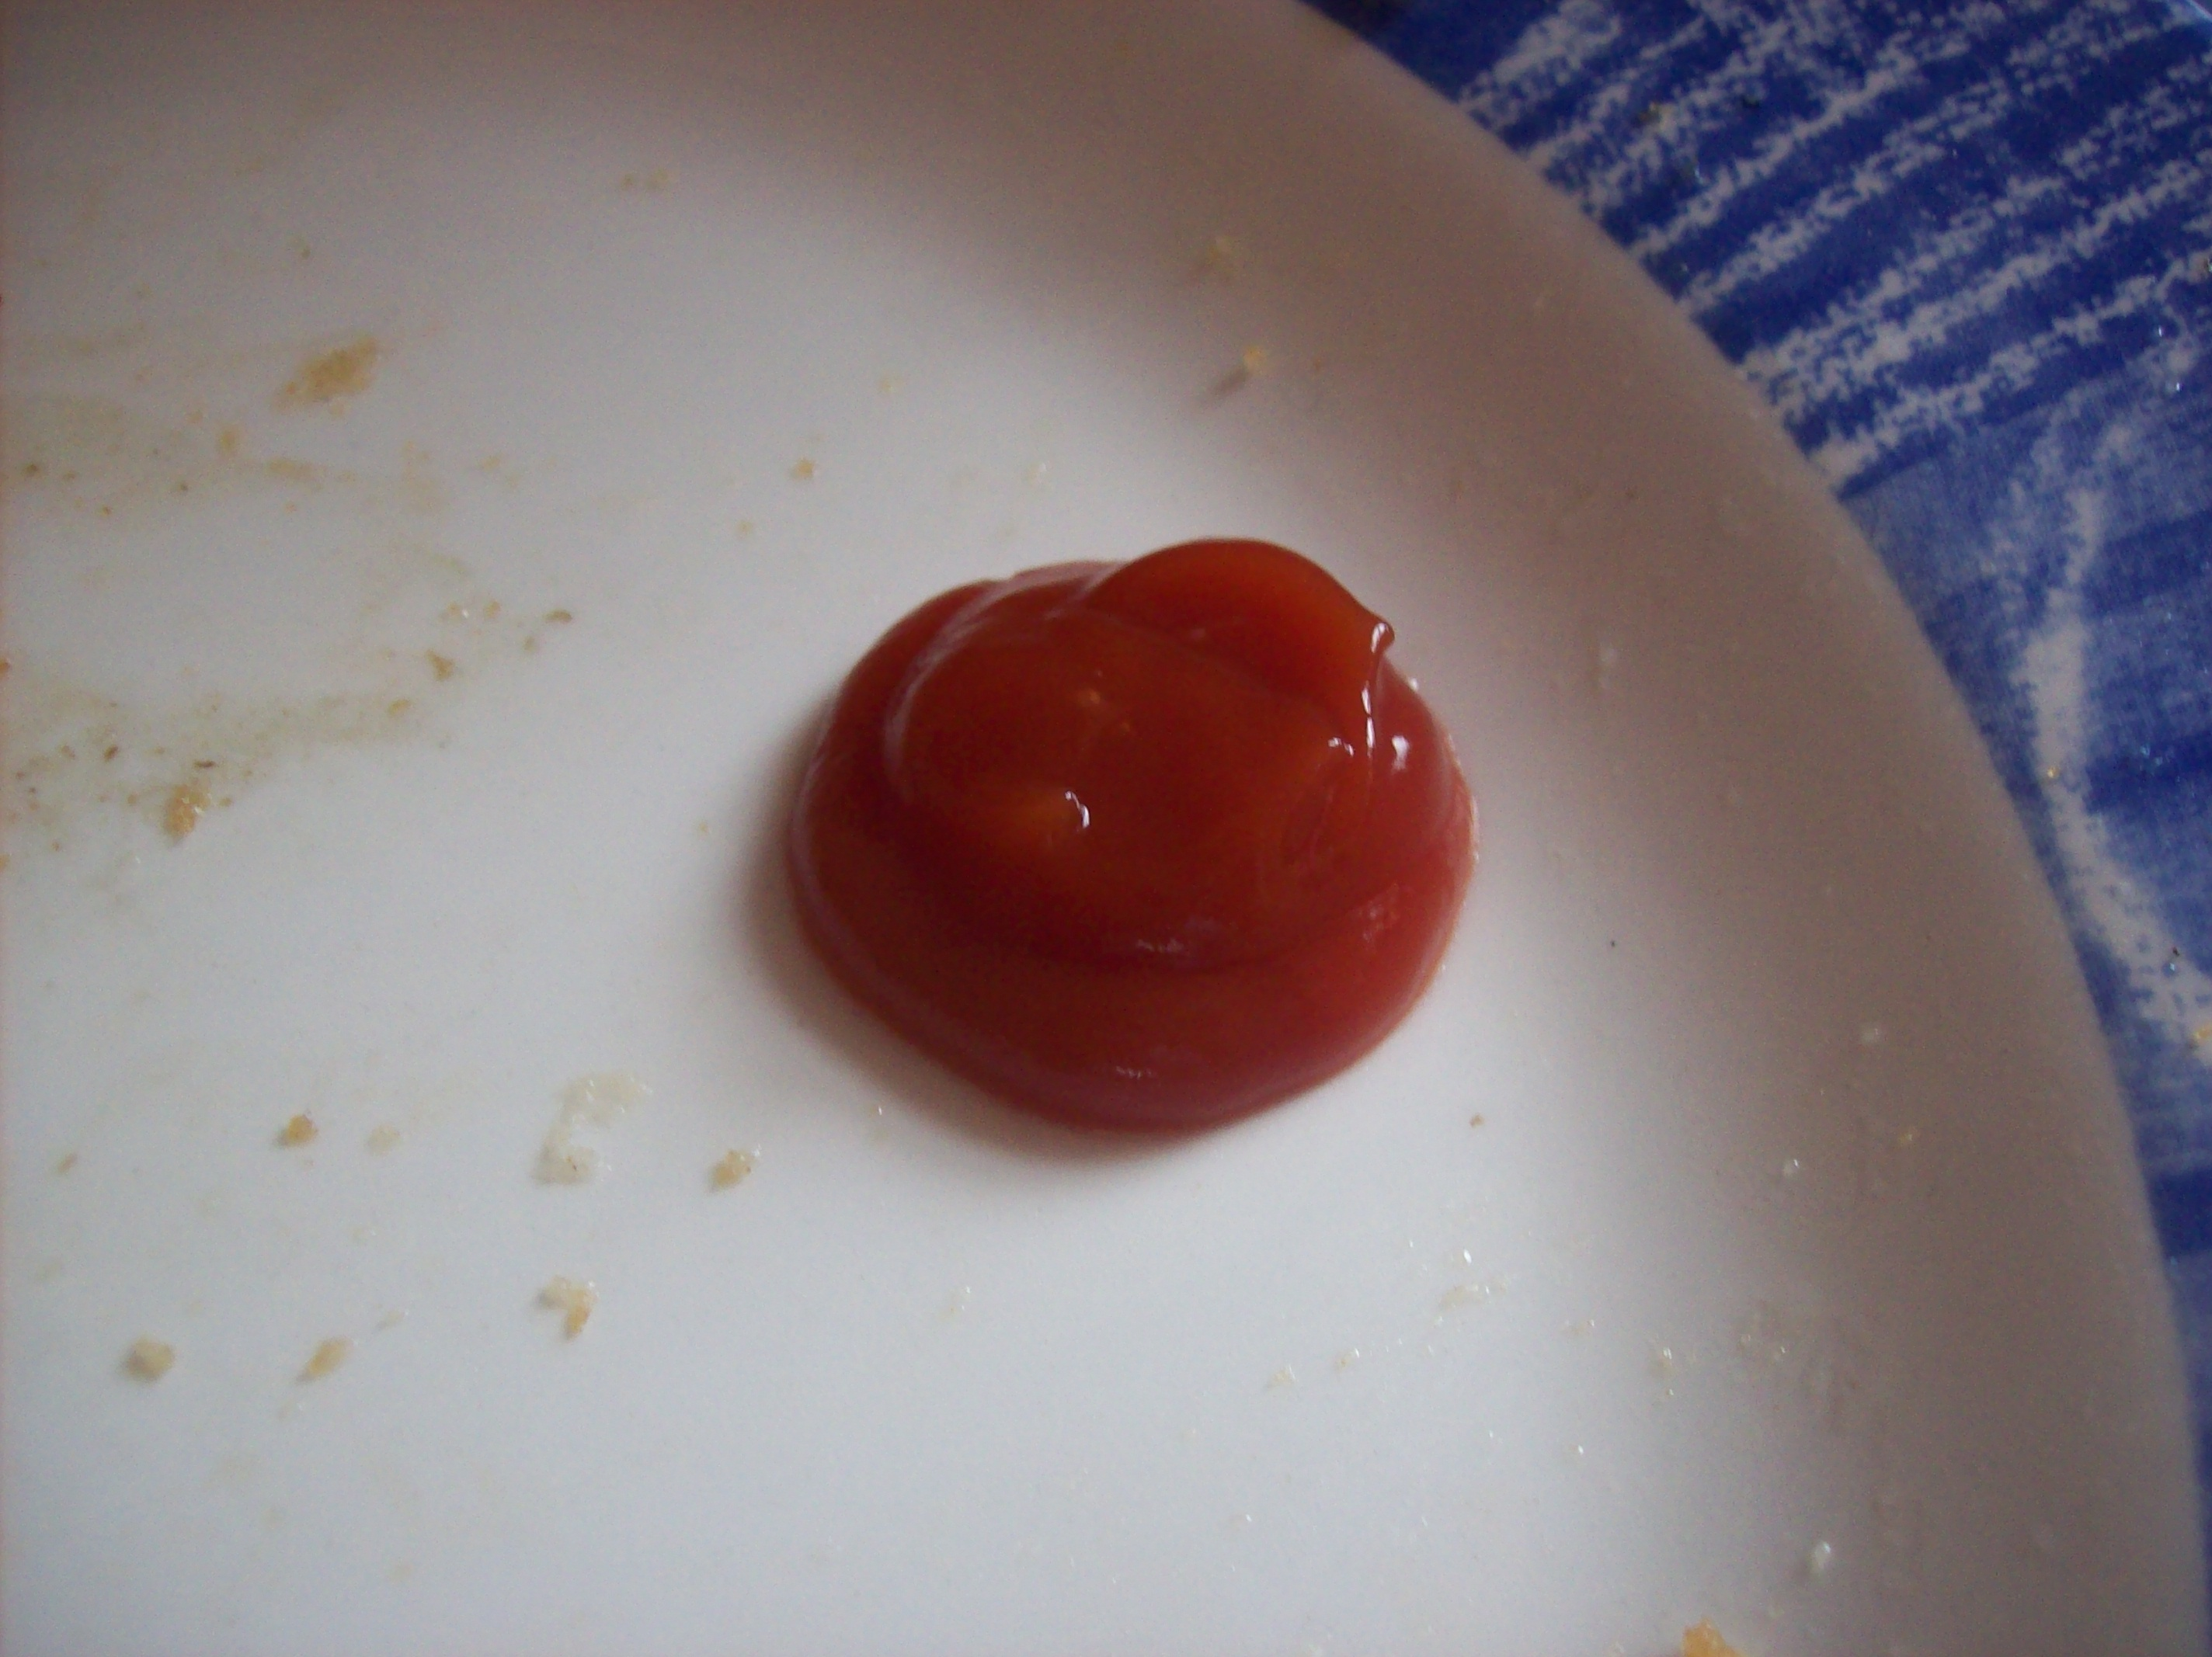 File:Ketchup example.jpg - Wikimedia Commons